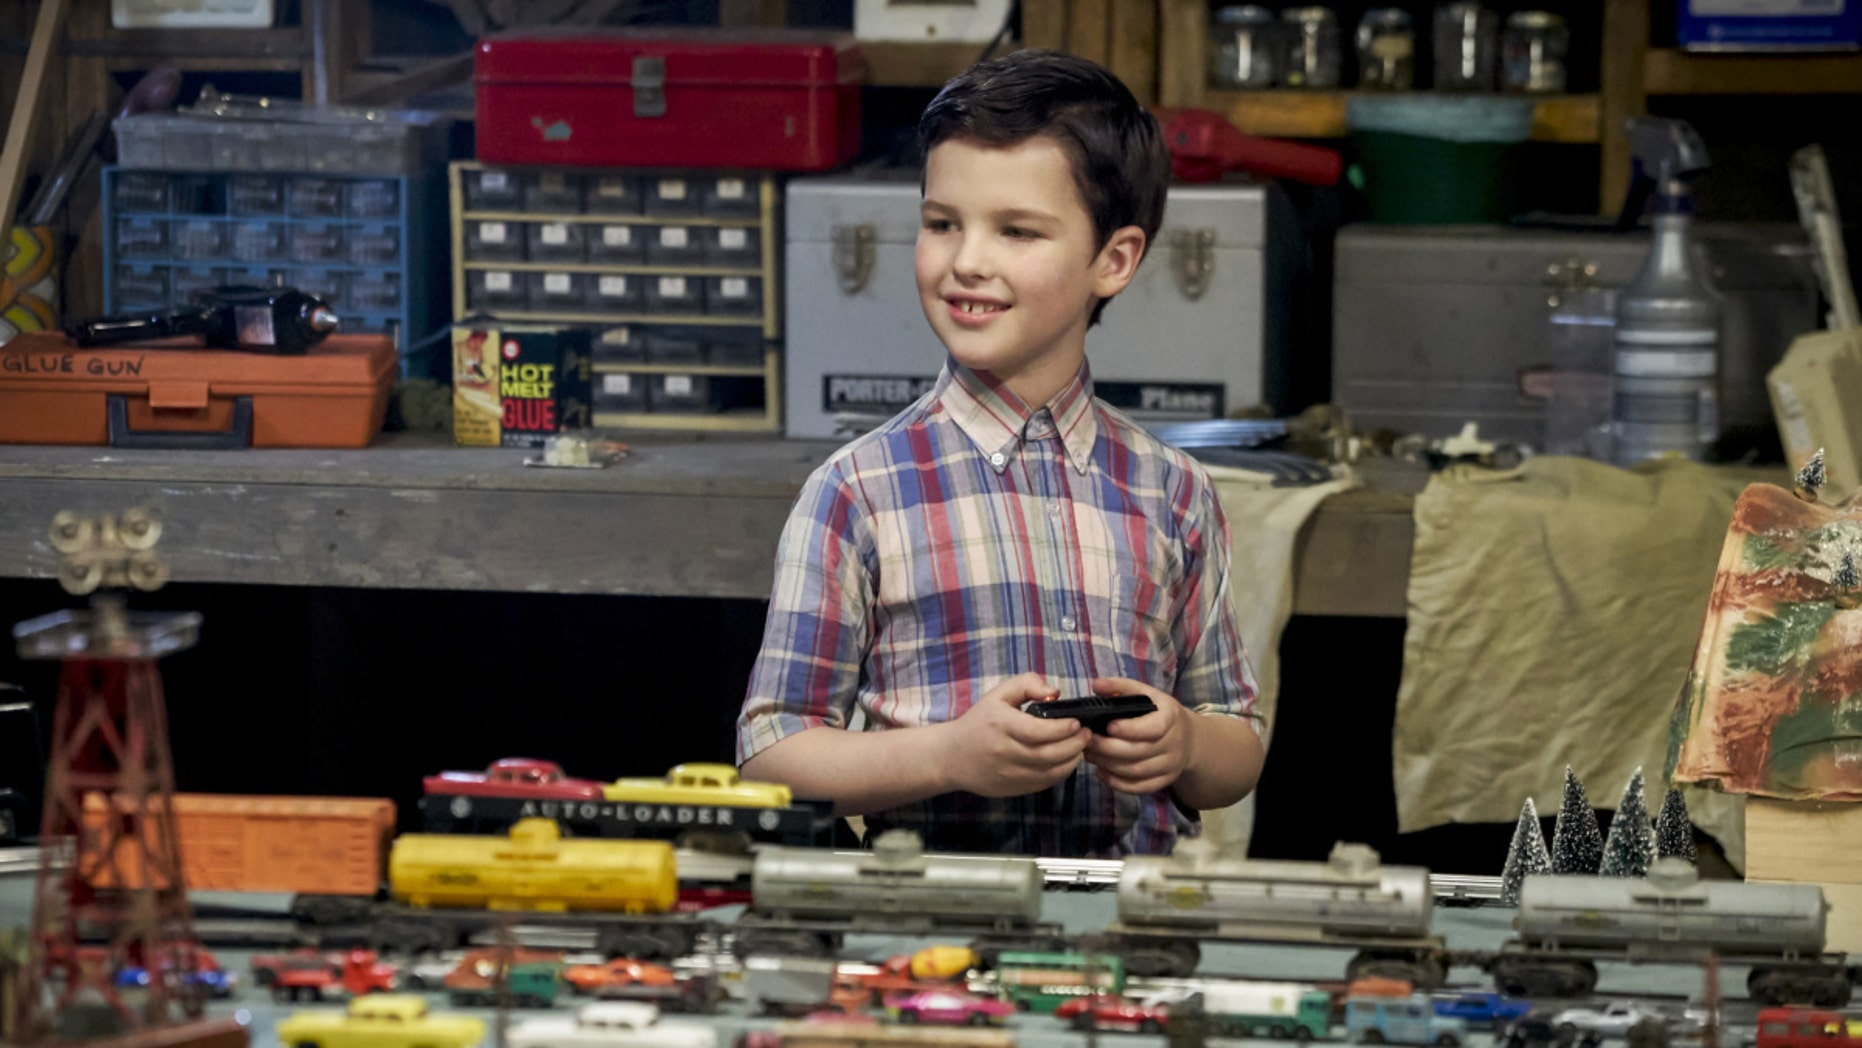 "YOUNG SHELDON is a new half-hour, single-camera comedy created by Chuck Lorre and Steven Molaro, that introduces ""The Big Bang Theory's"" Sheldon Cooper  (Iain Armitage), a 9-year-old genius living with his family in East Texas and going to high school.  YOUNG SHELDON will have a special Monday launch behind the season premiere of THE BIG BANG THEORY on Sept. 25 (8:30-9:00 PM, ET/PT).  On Nov. 2, YOUNG SHELDON will move to its regular time period, Thursdays (8:30-9:00 PM, ET/PT) on the CBS Television Network. Photo: Sonja Flemming/CBS ©2017 CBS Broadcasting, Inc. All Rights Reserved."